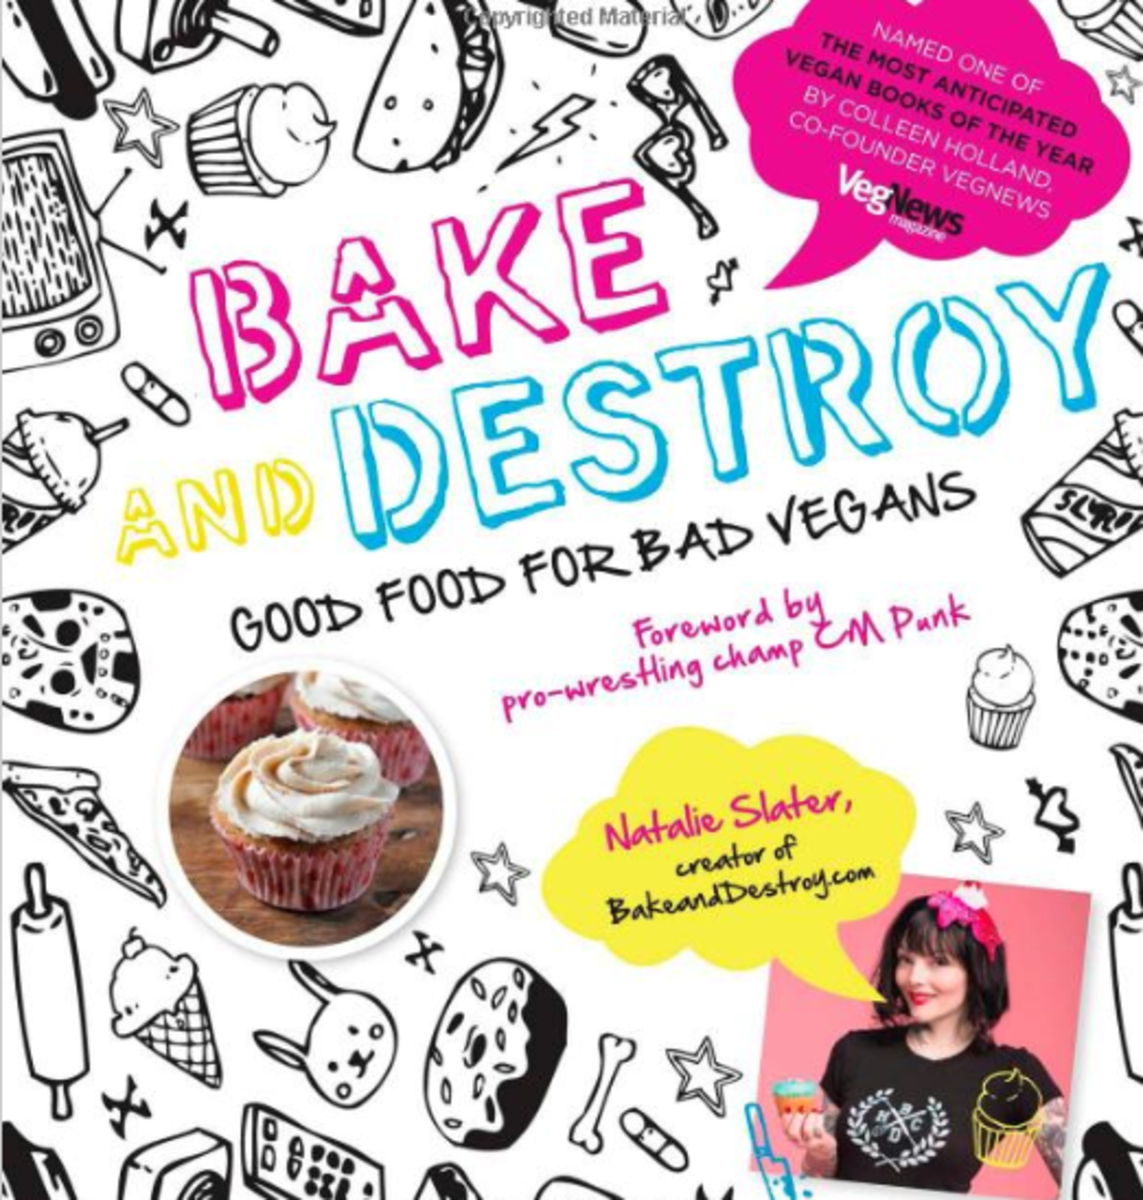 Bake and Destroy: Good Food for Bad Vegans